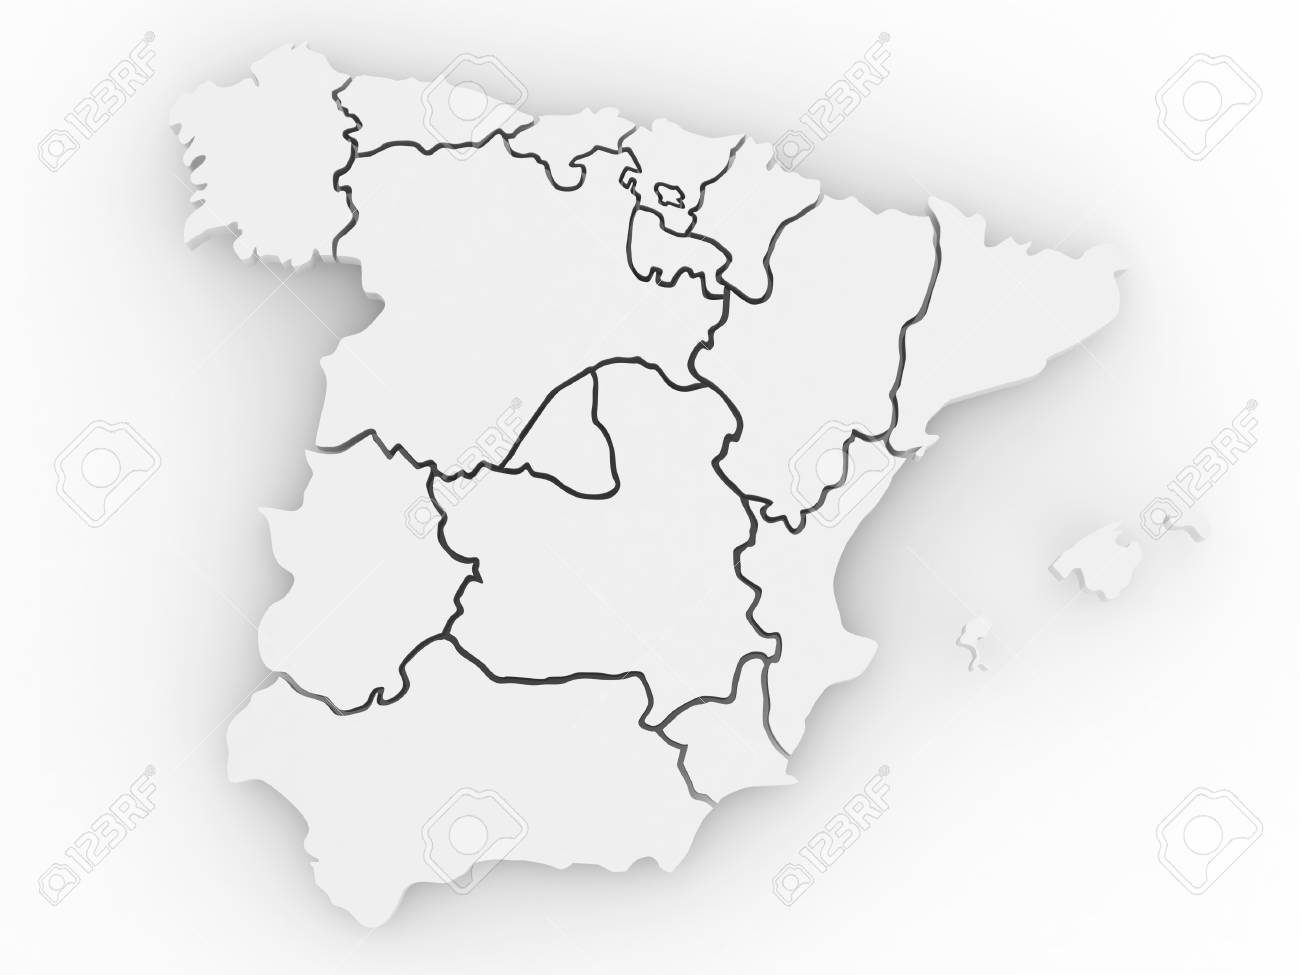 Mapa De España 3d.Three Dimensional Map Of Spain On White Isolated Background